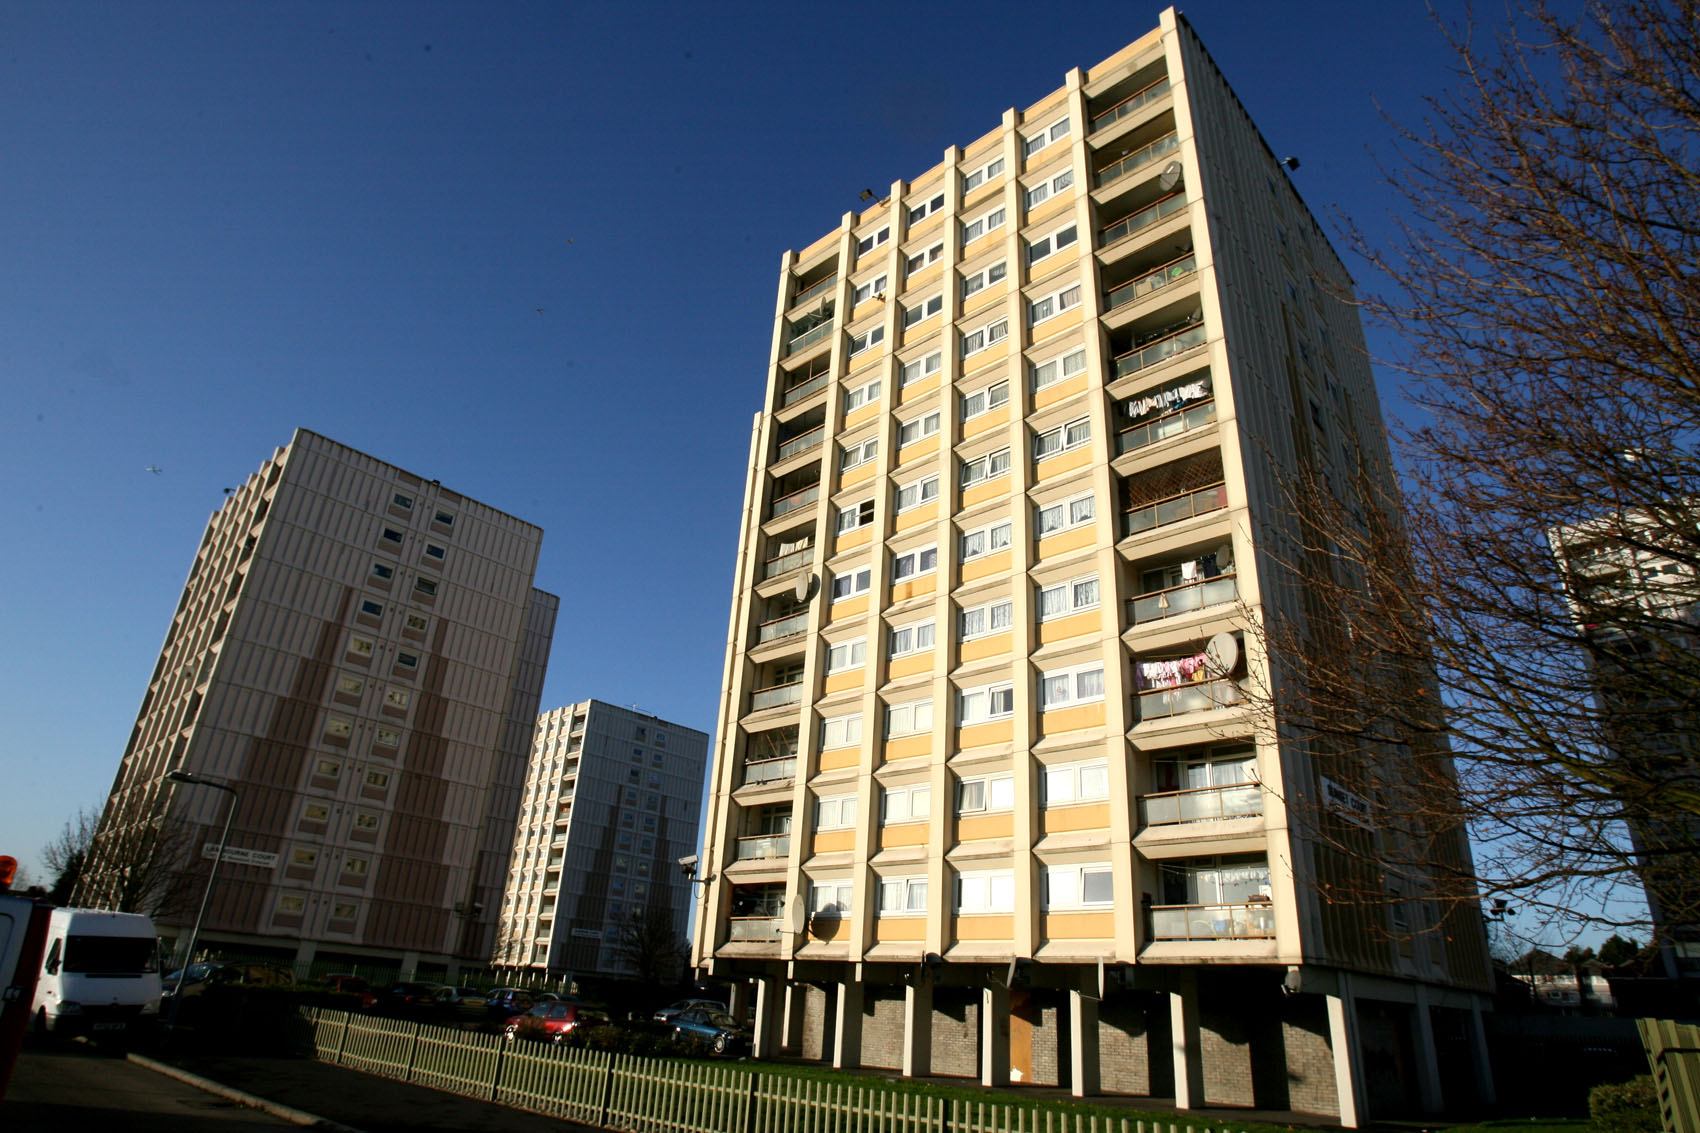 Orchard Estate, Woodford Green